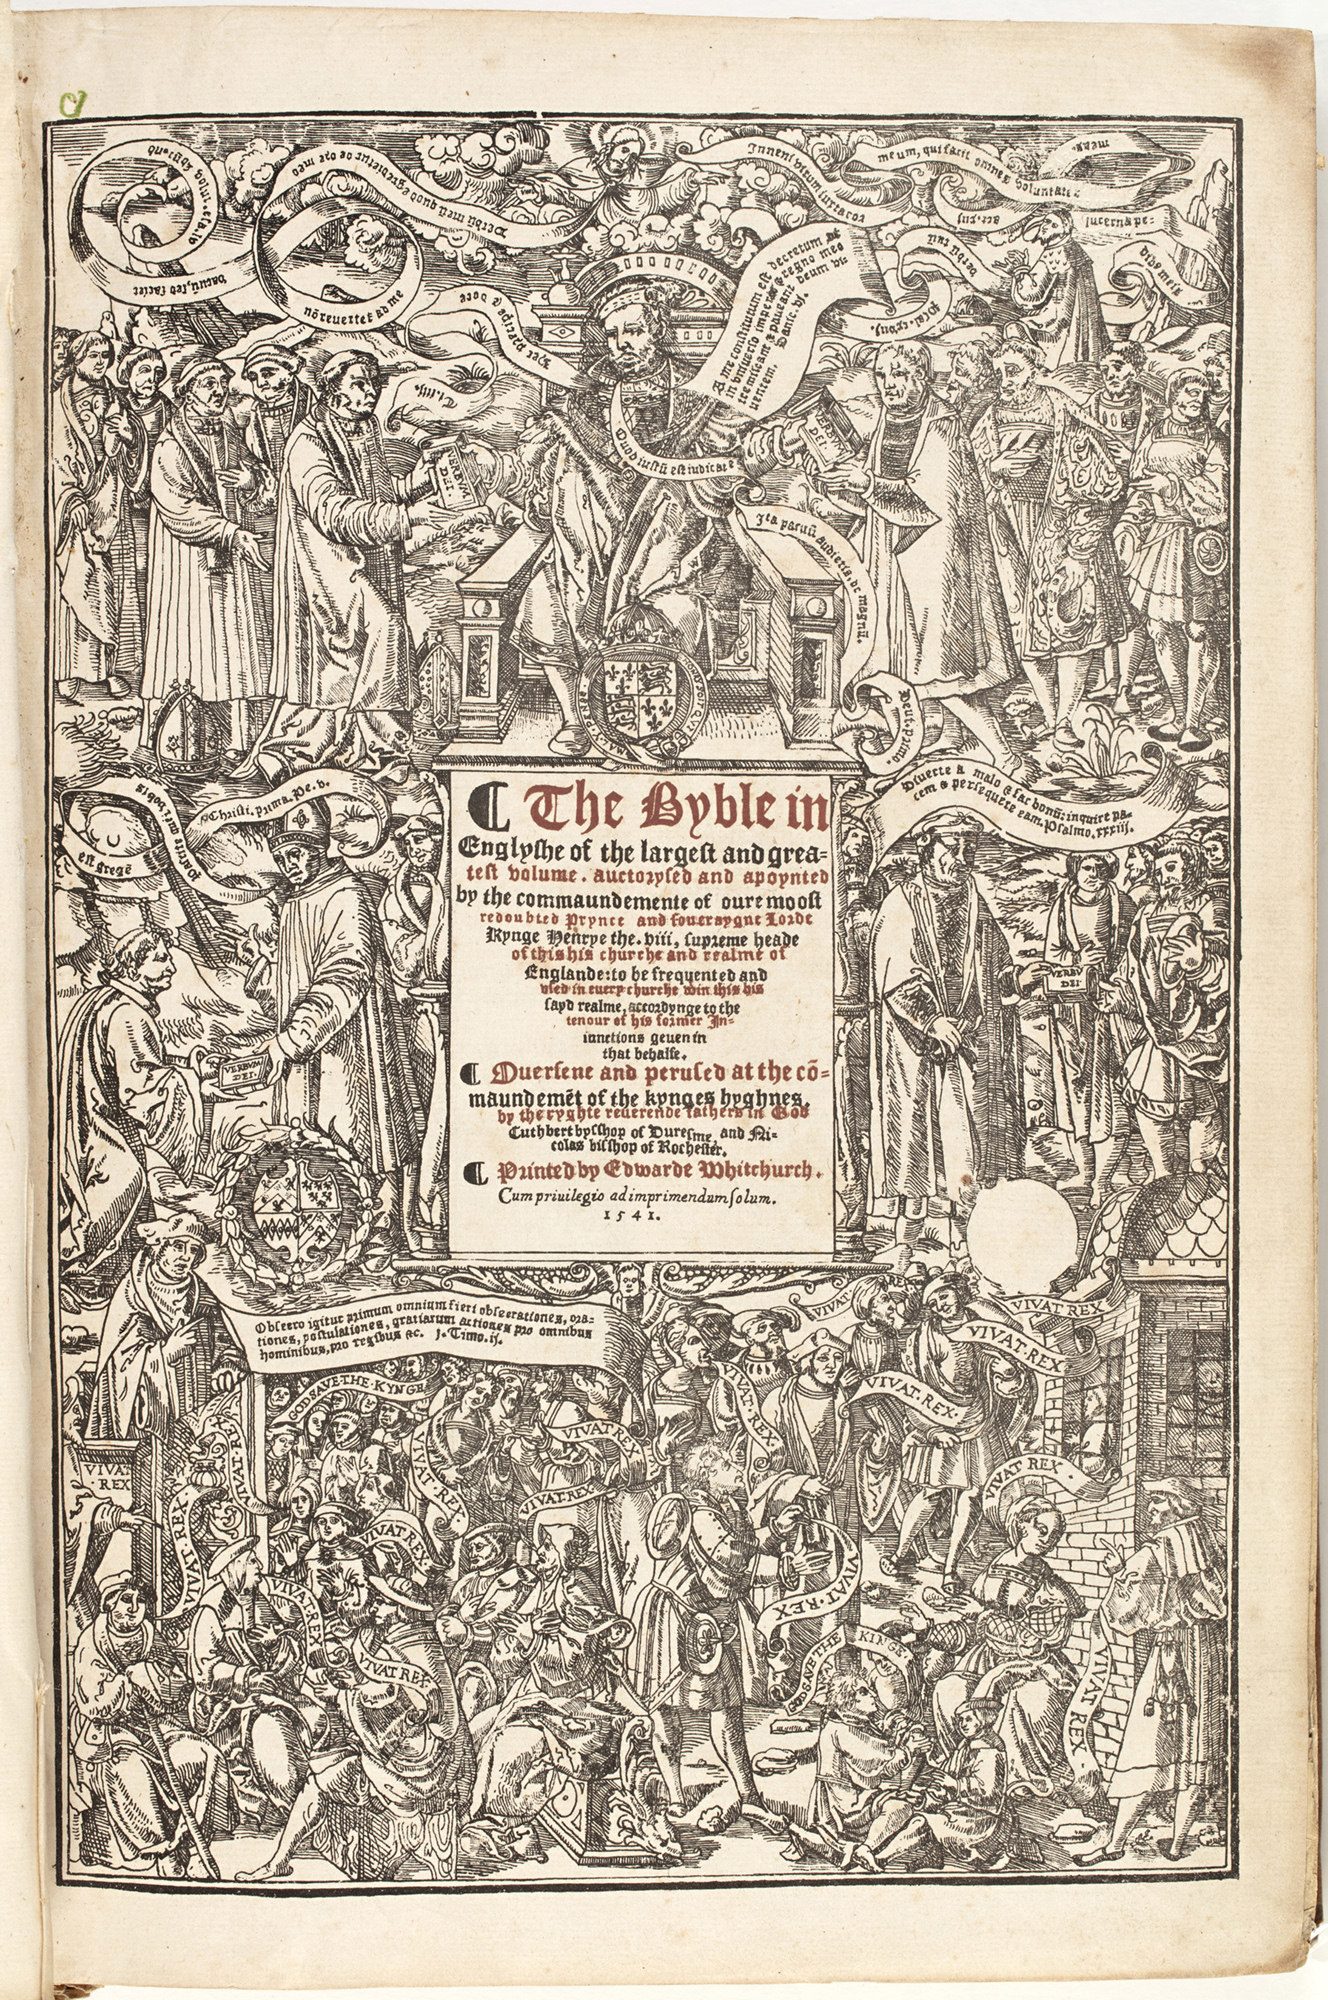 The Byble in Englyshe of the largest and greatest volume, auctorysed and apoynted by the commaundemente of oure moost redoubted Prynce, 1541